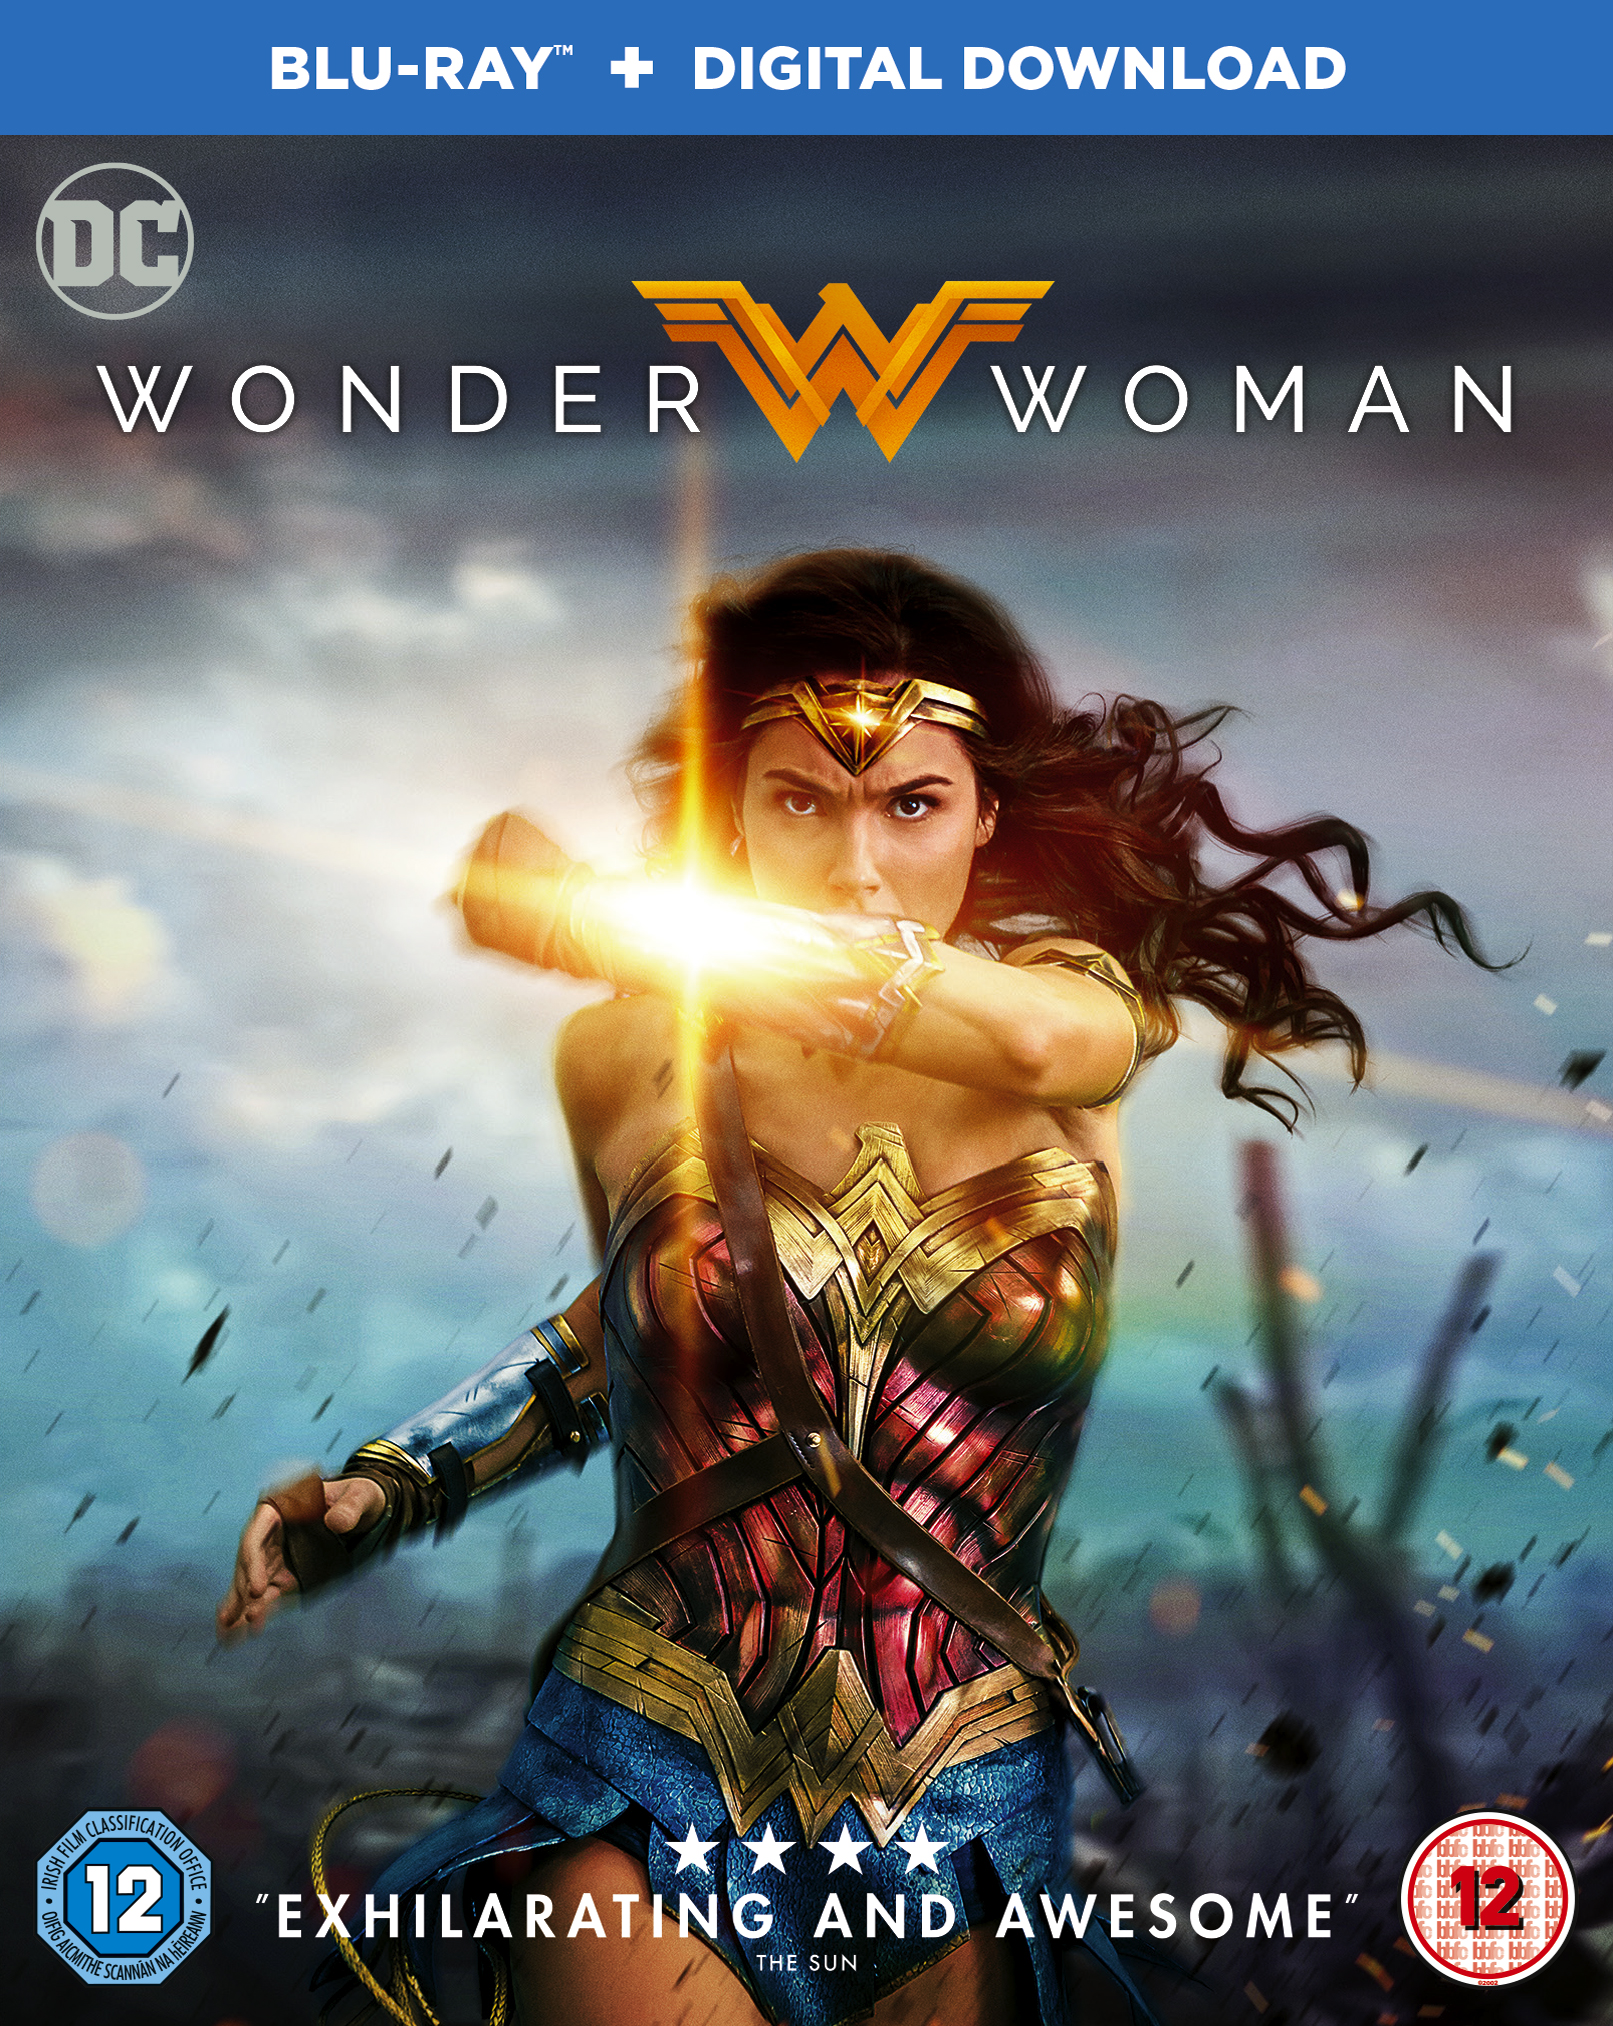 Wonder Woman comes to DVD and Blu Ray